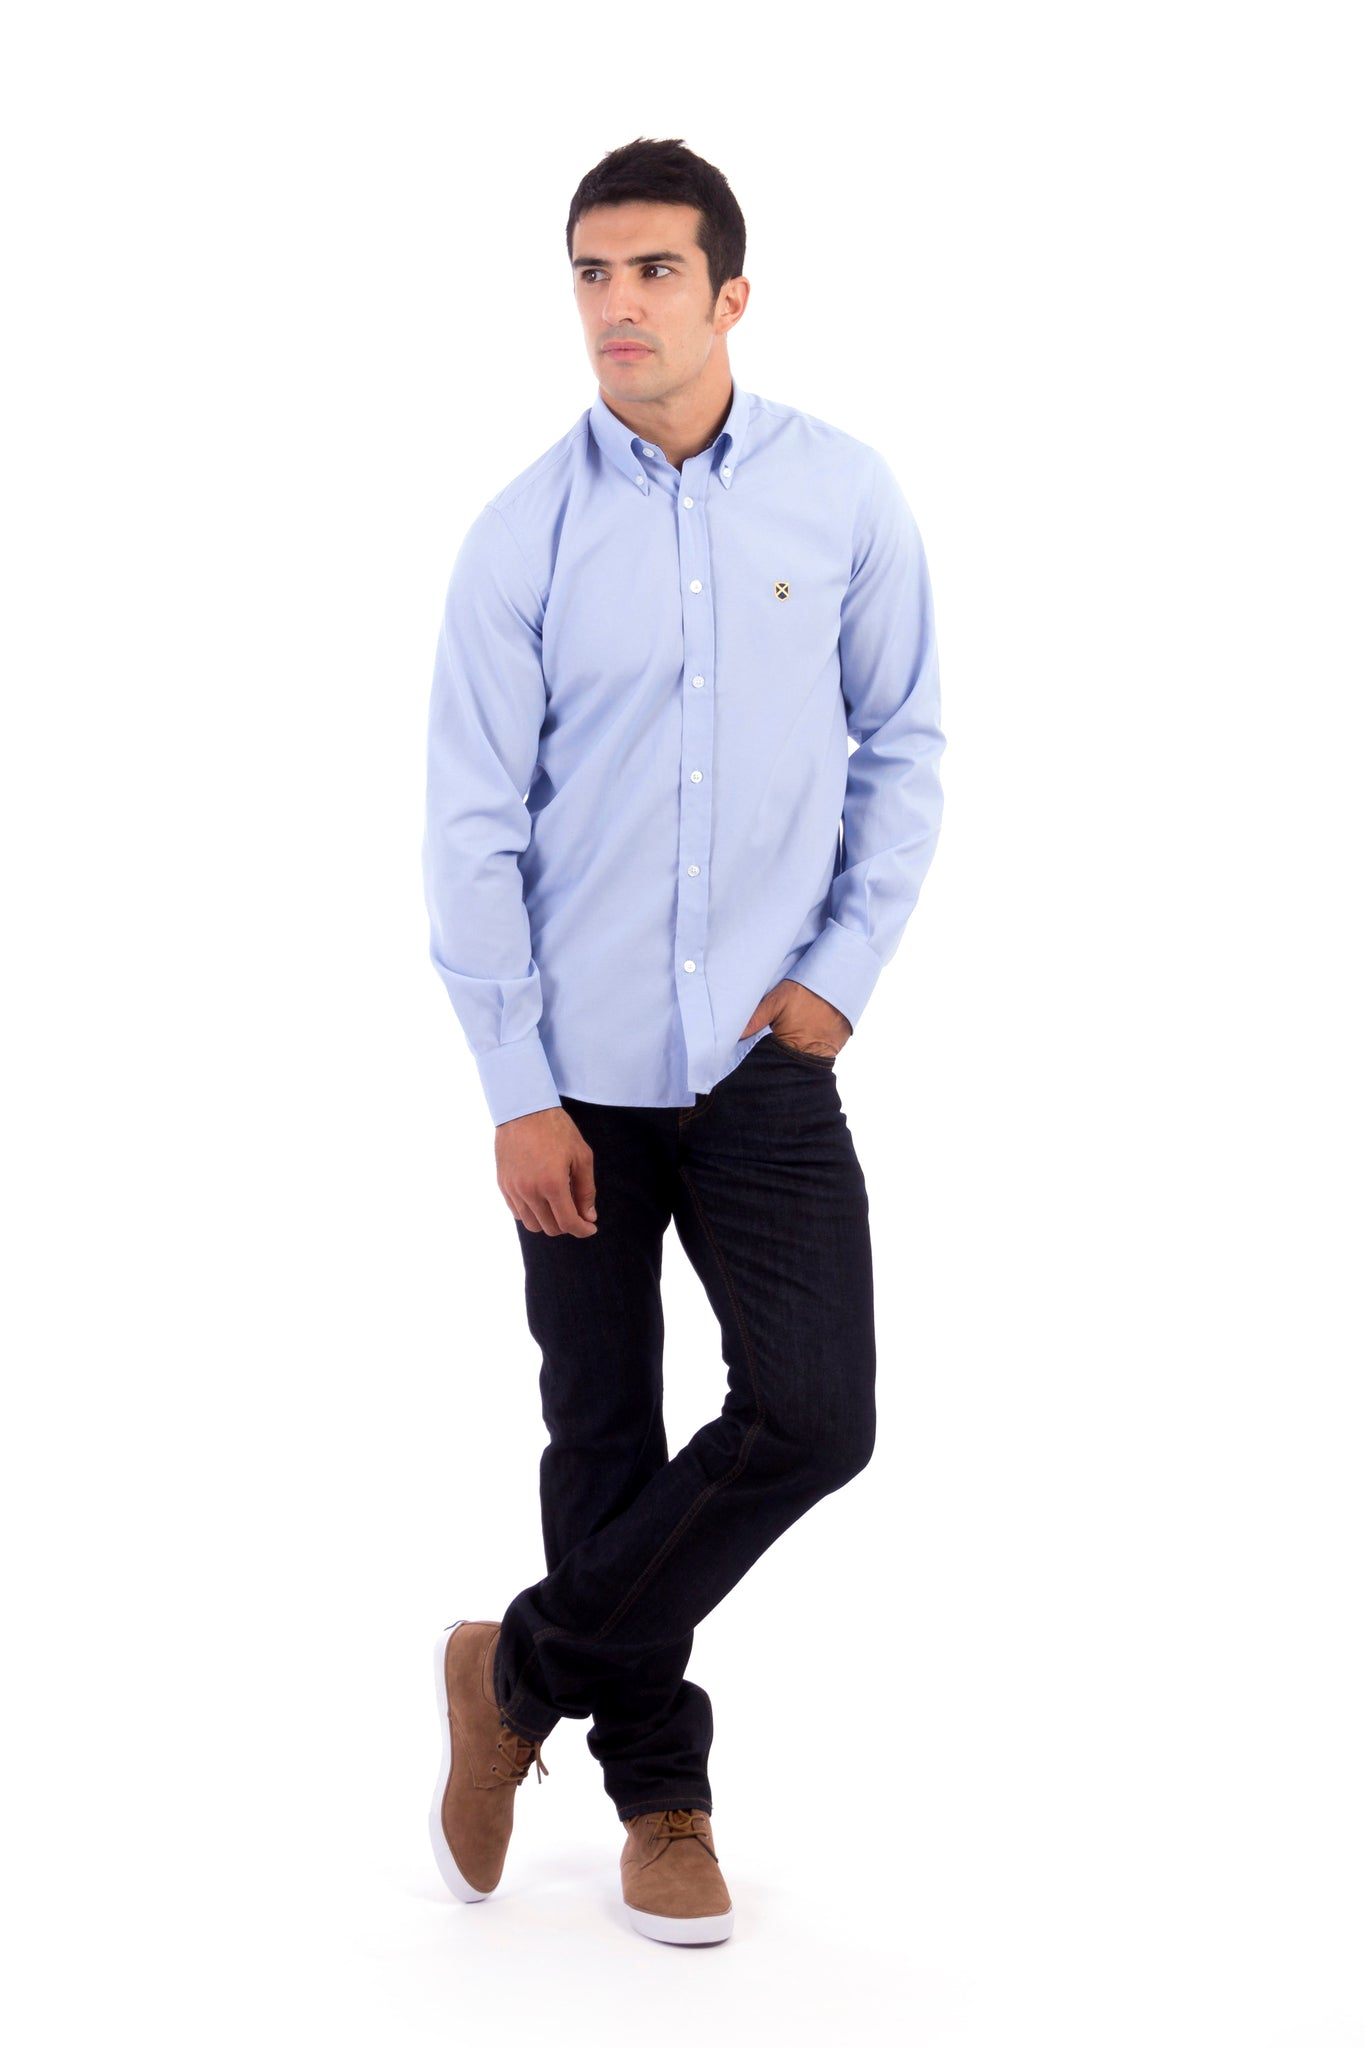 Camisa GENTLE SIR OXFORD azul celeste